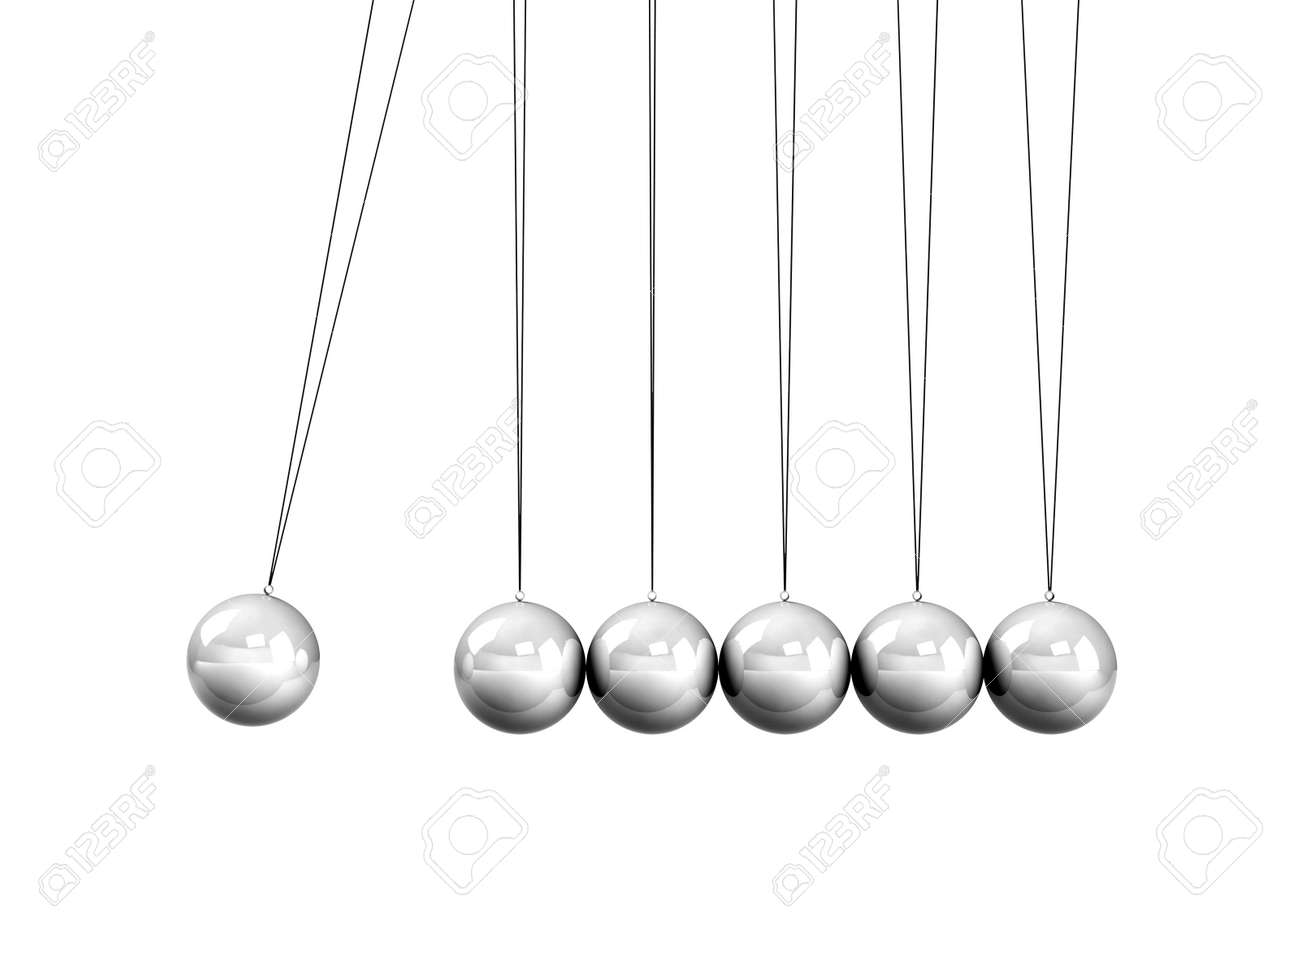 Collision Balls close up isolated on white background Stock Photo - 26225328